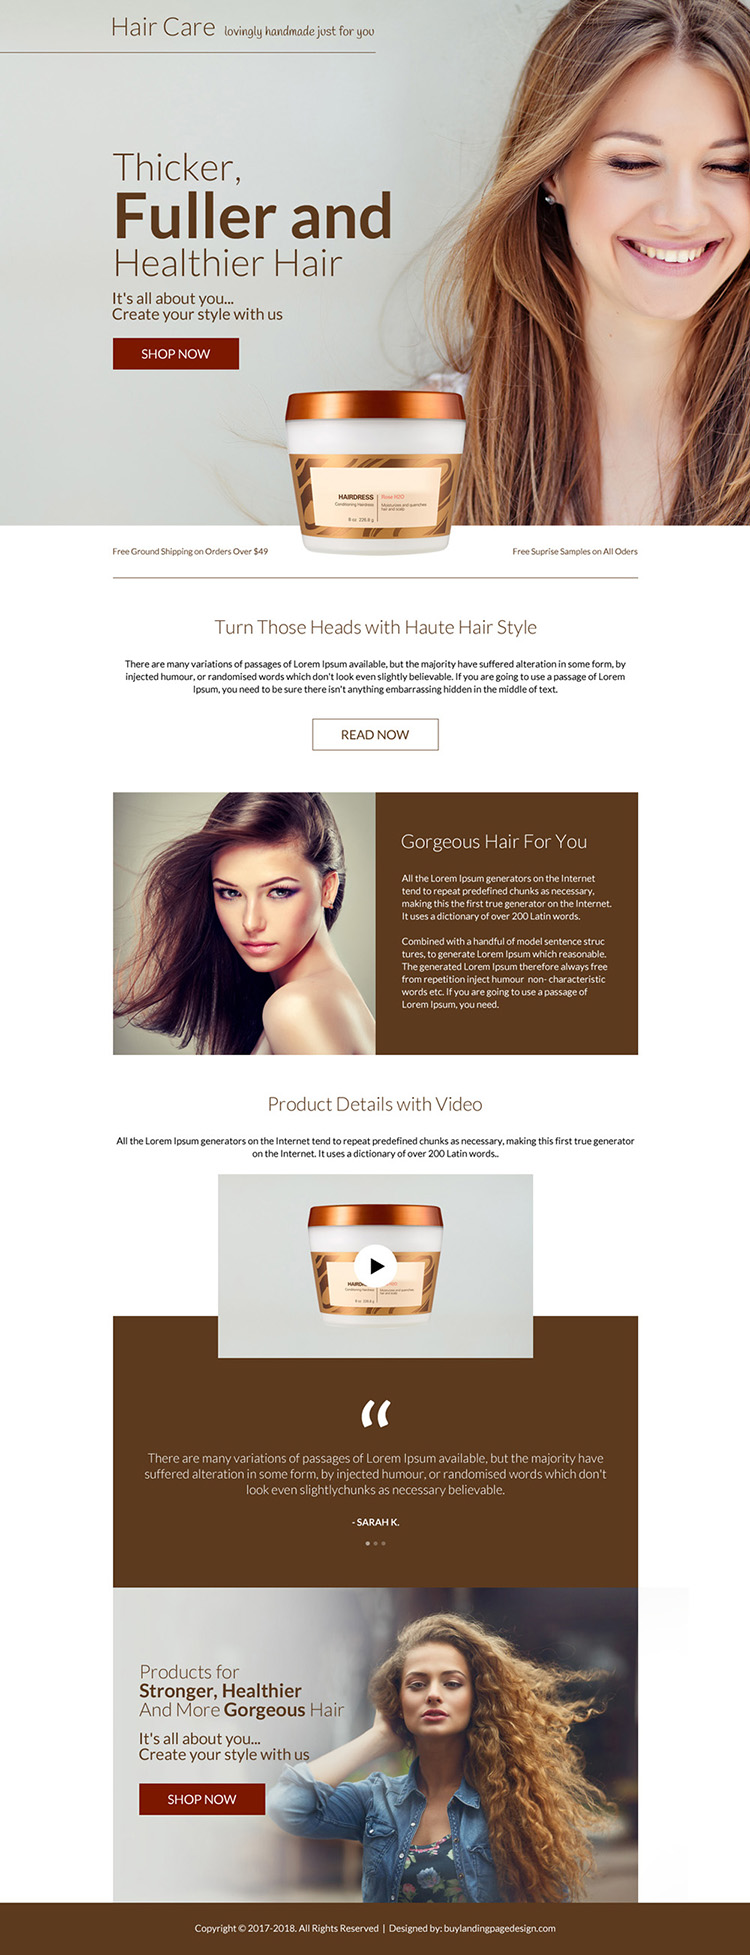 hair care product selling bootstrap landing page design